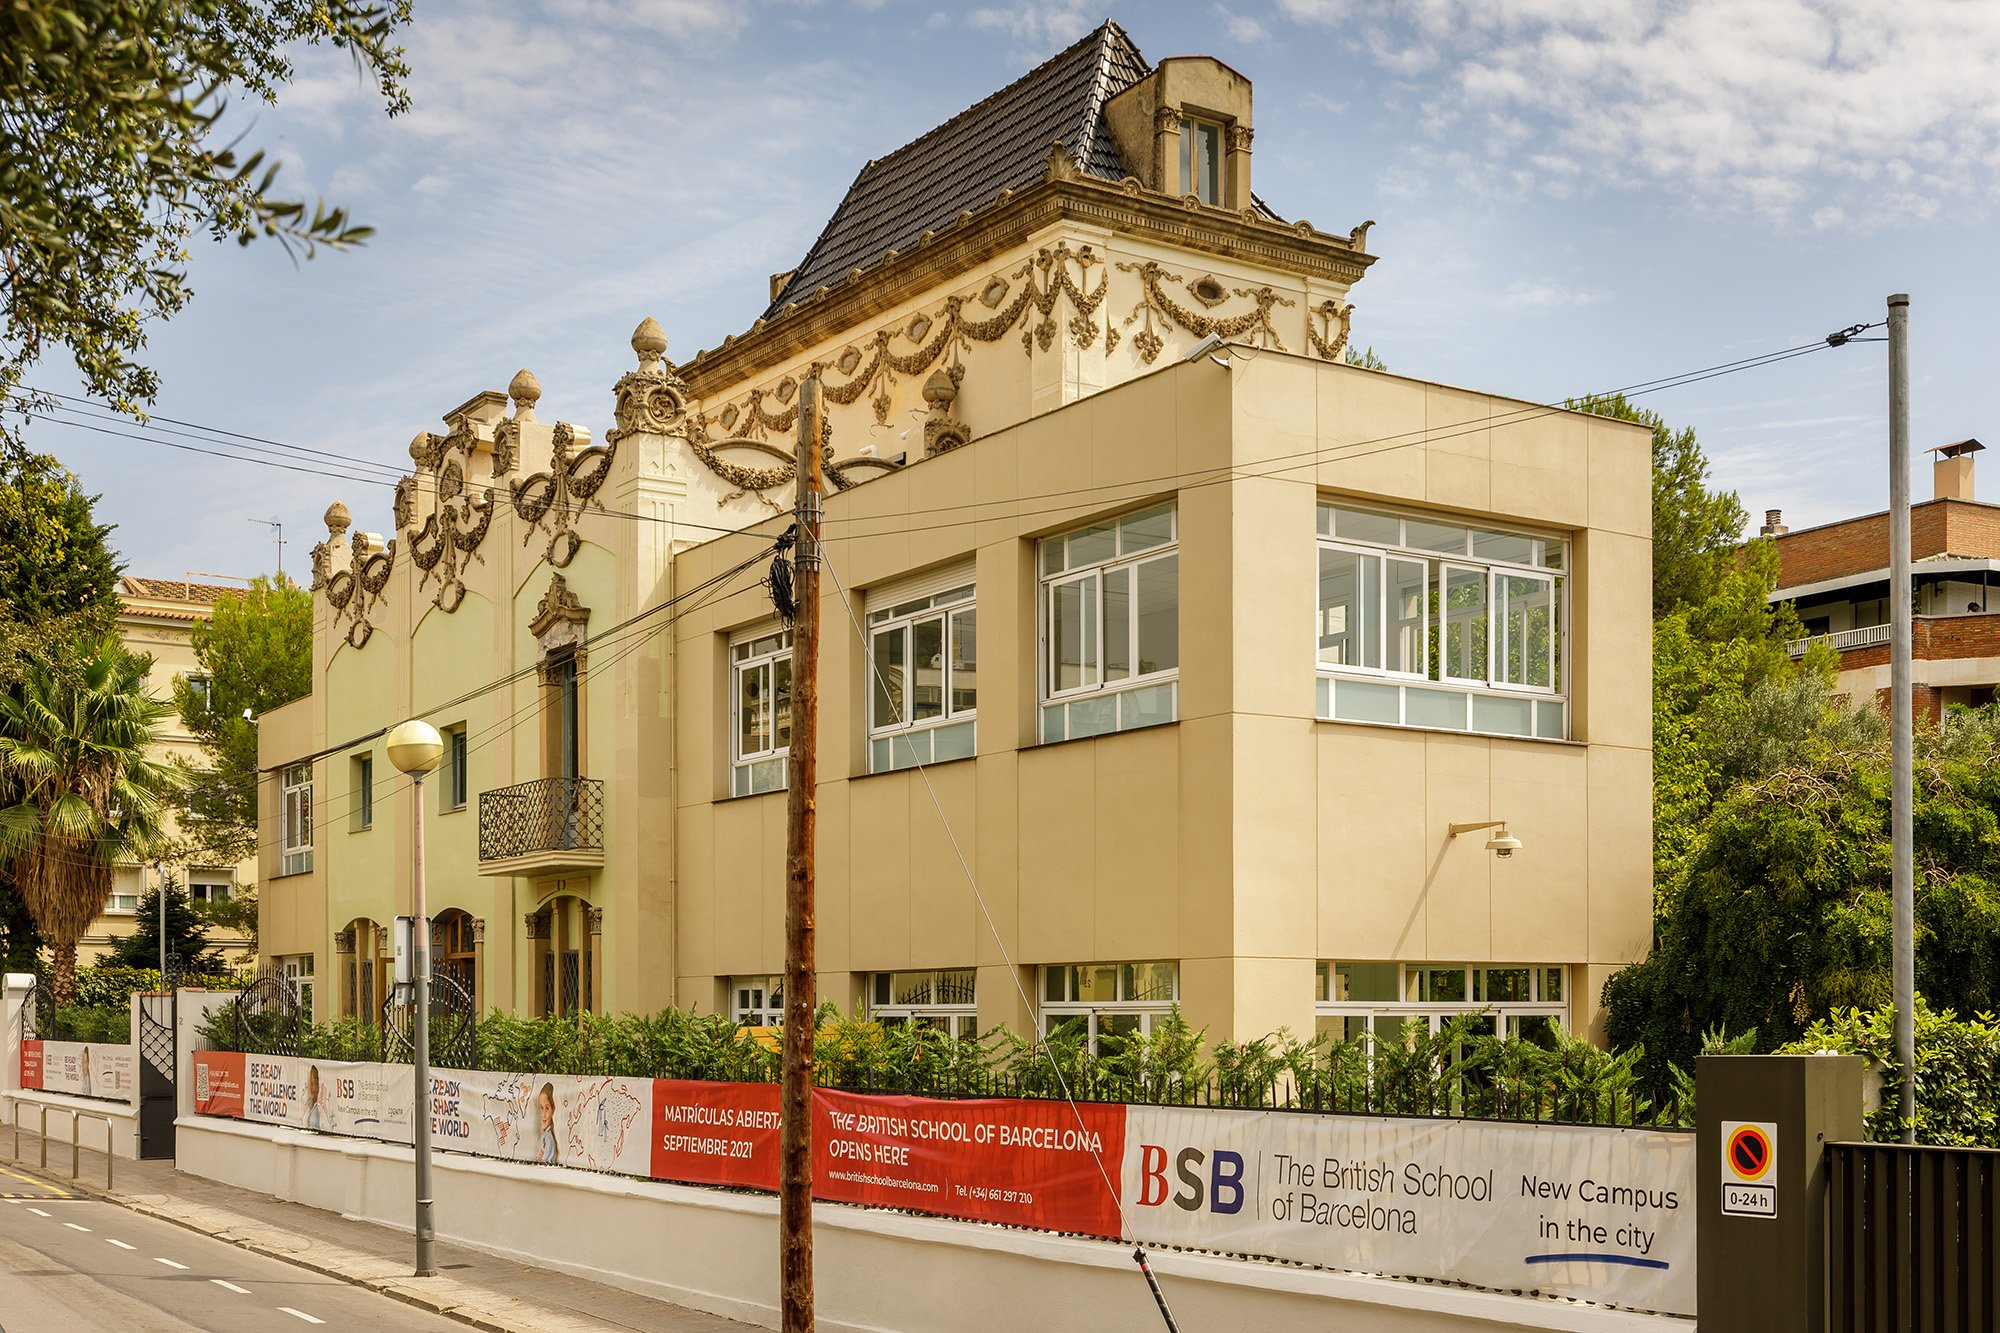 BSB starts the school year with a new campus in Barcelona